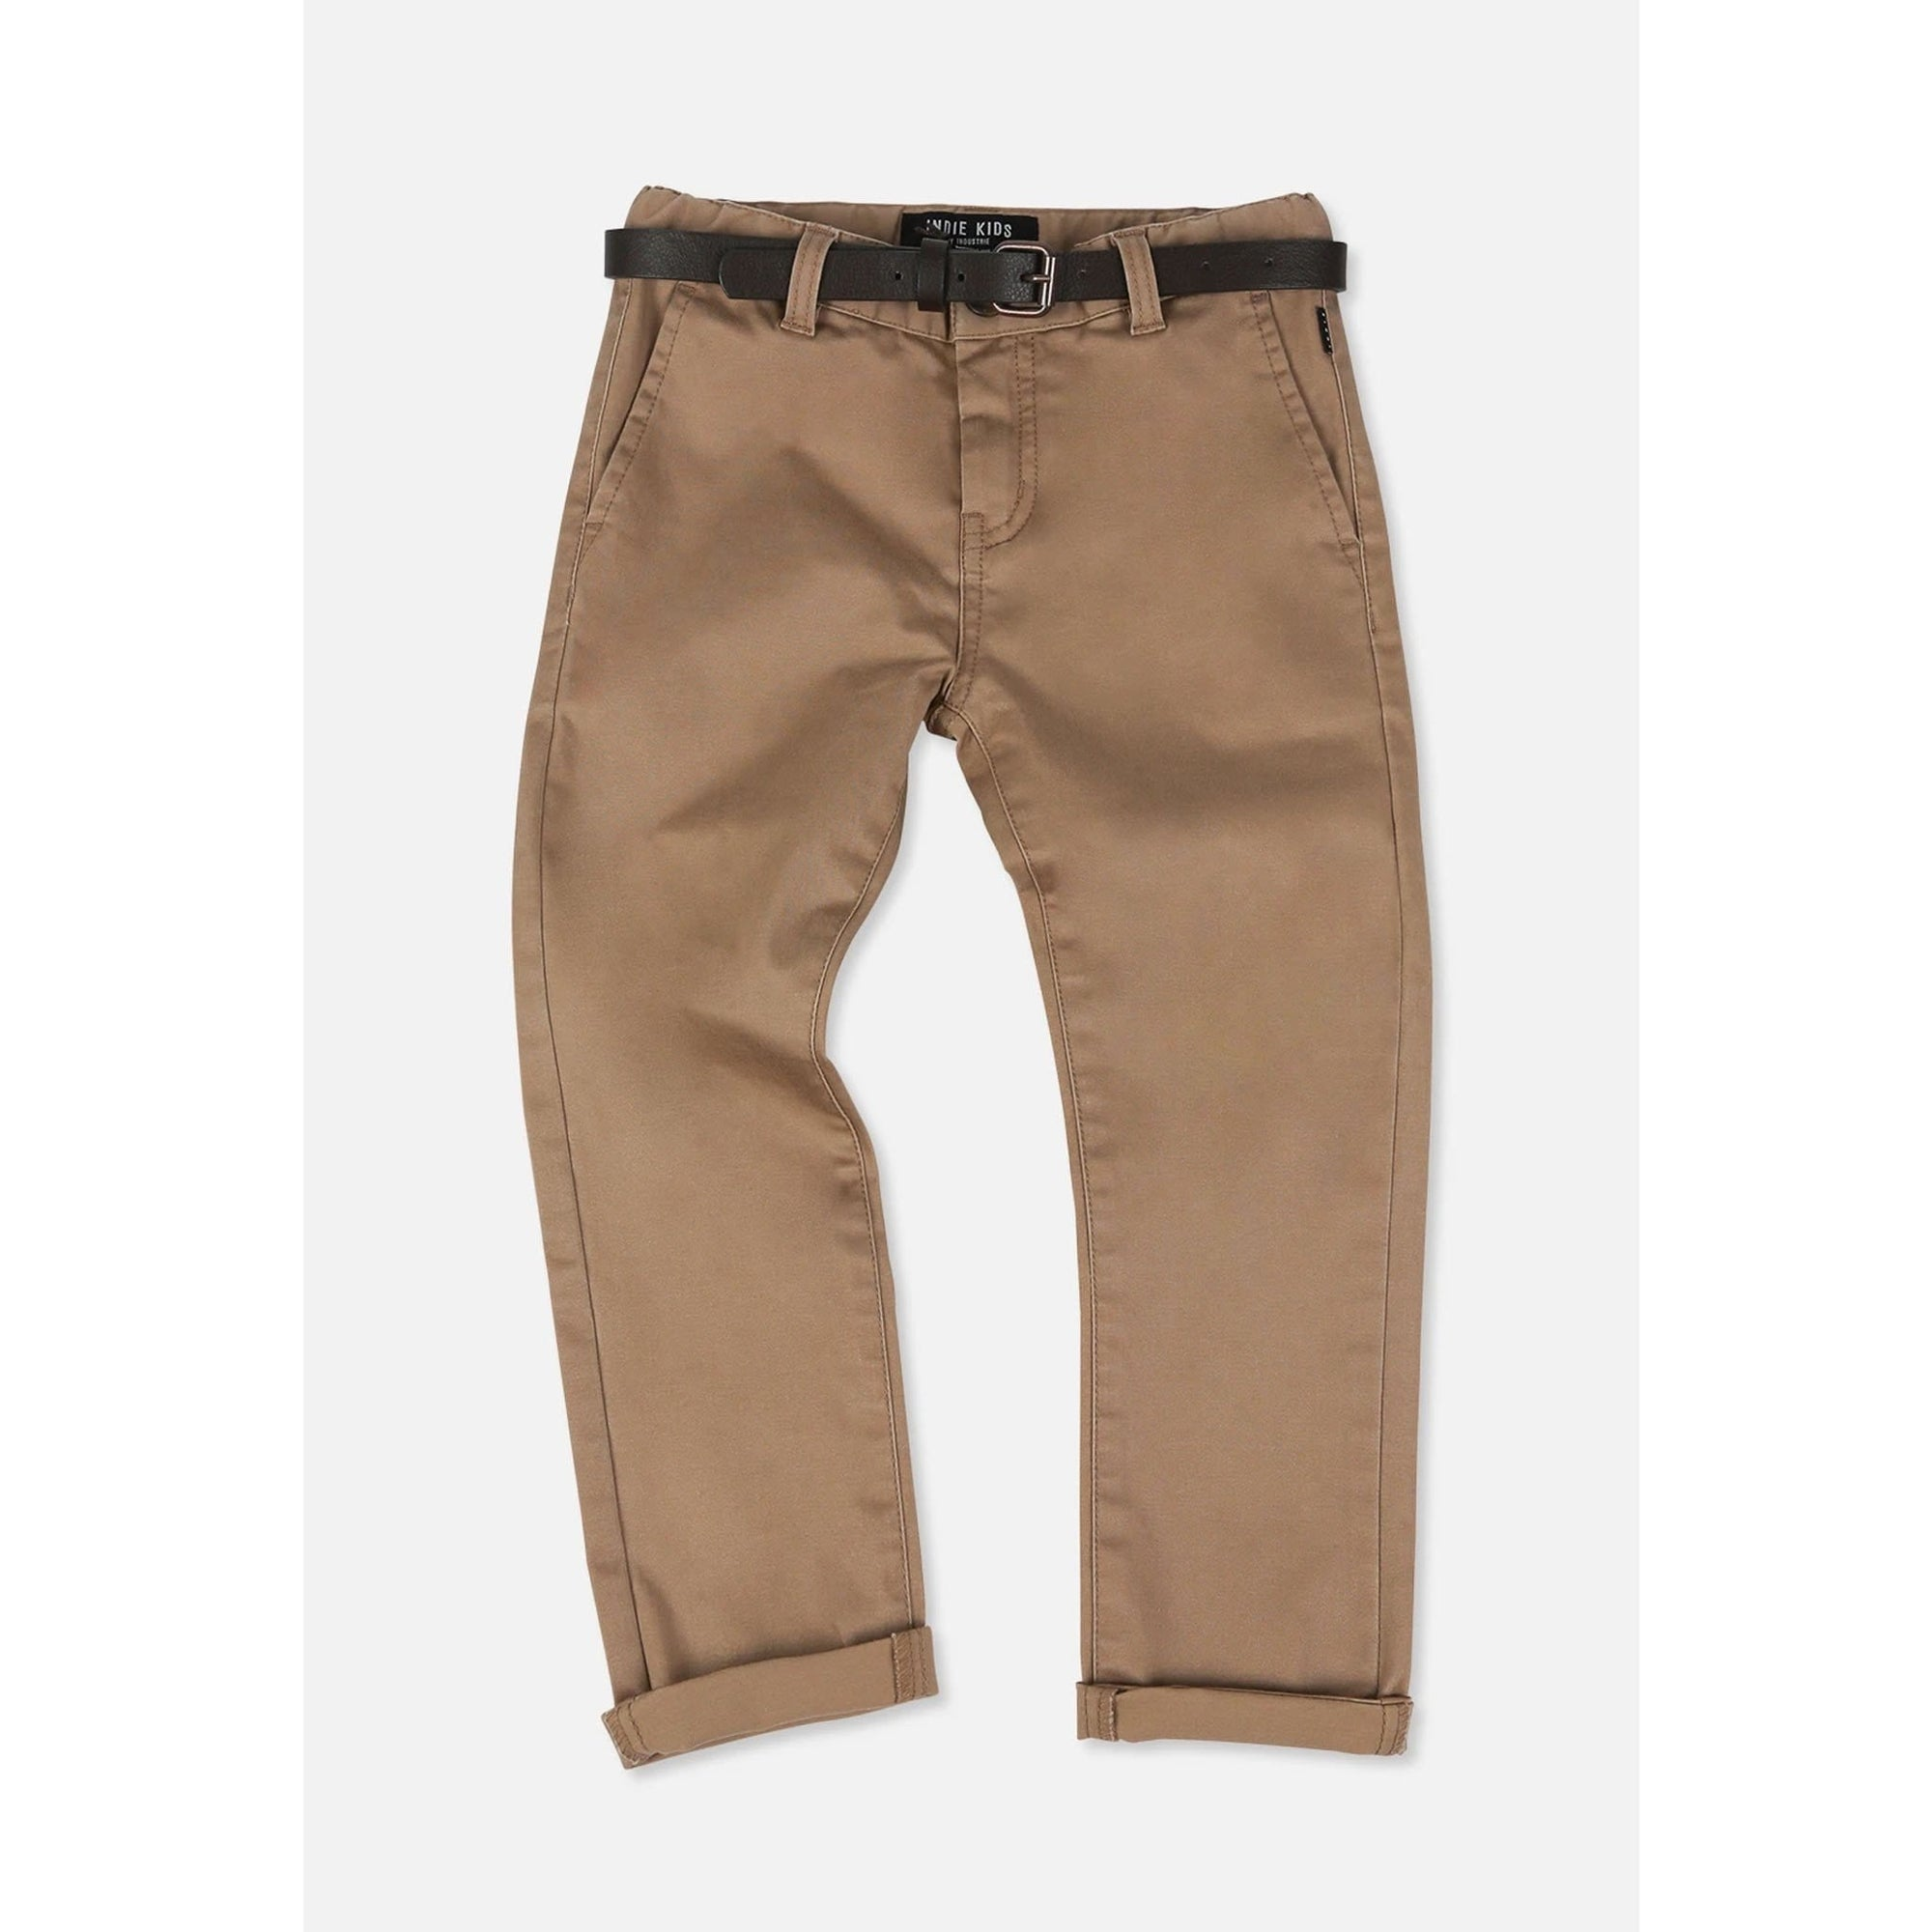 Industrie Kids Cuba Stretch Chino Caramel